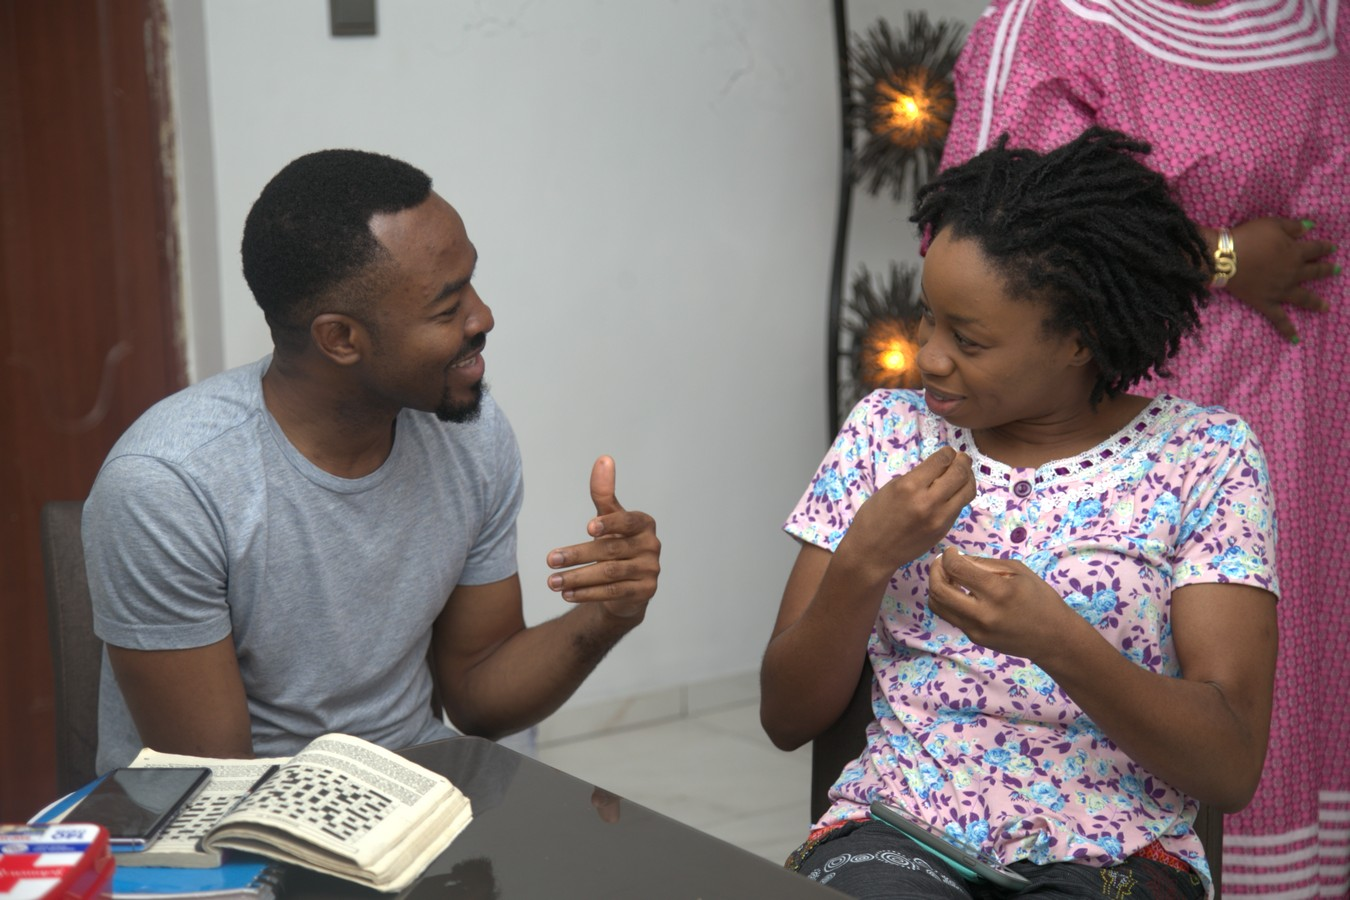 OC Ukeje and A'rese Emokpae in Unbreakable